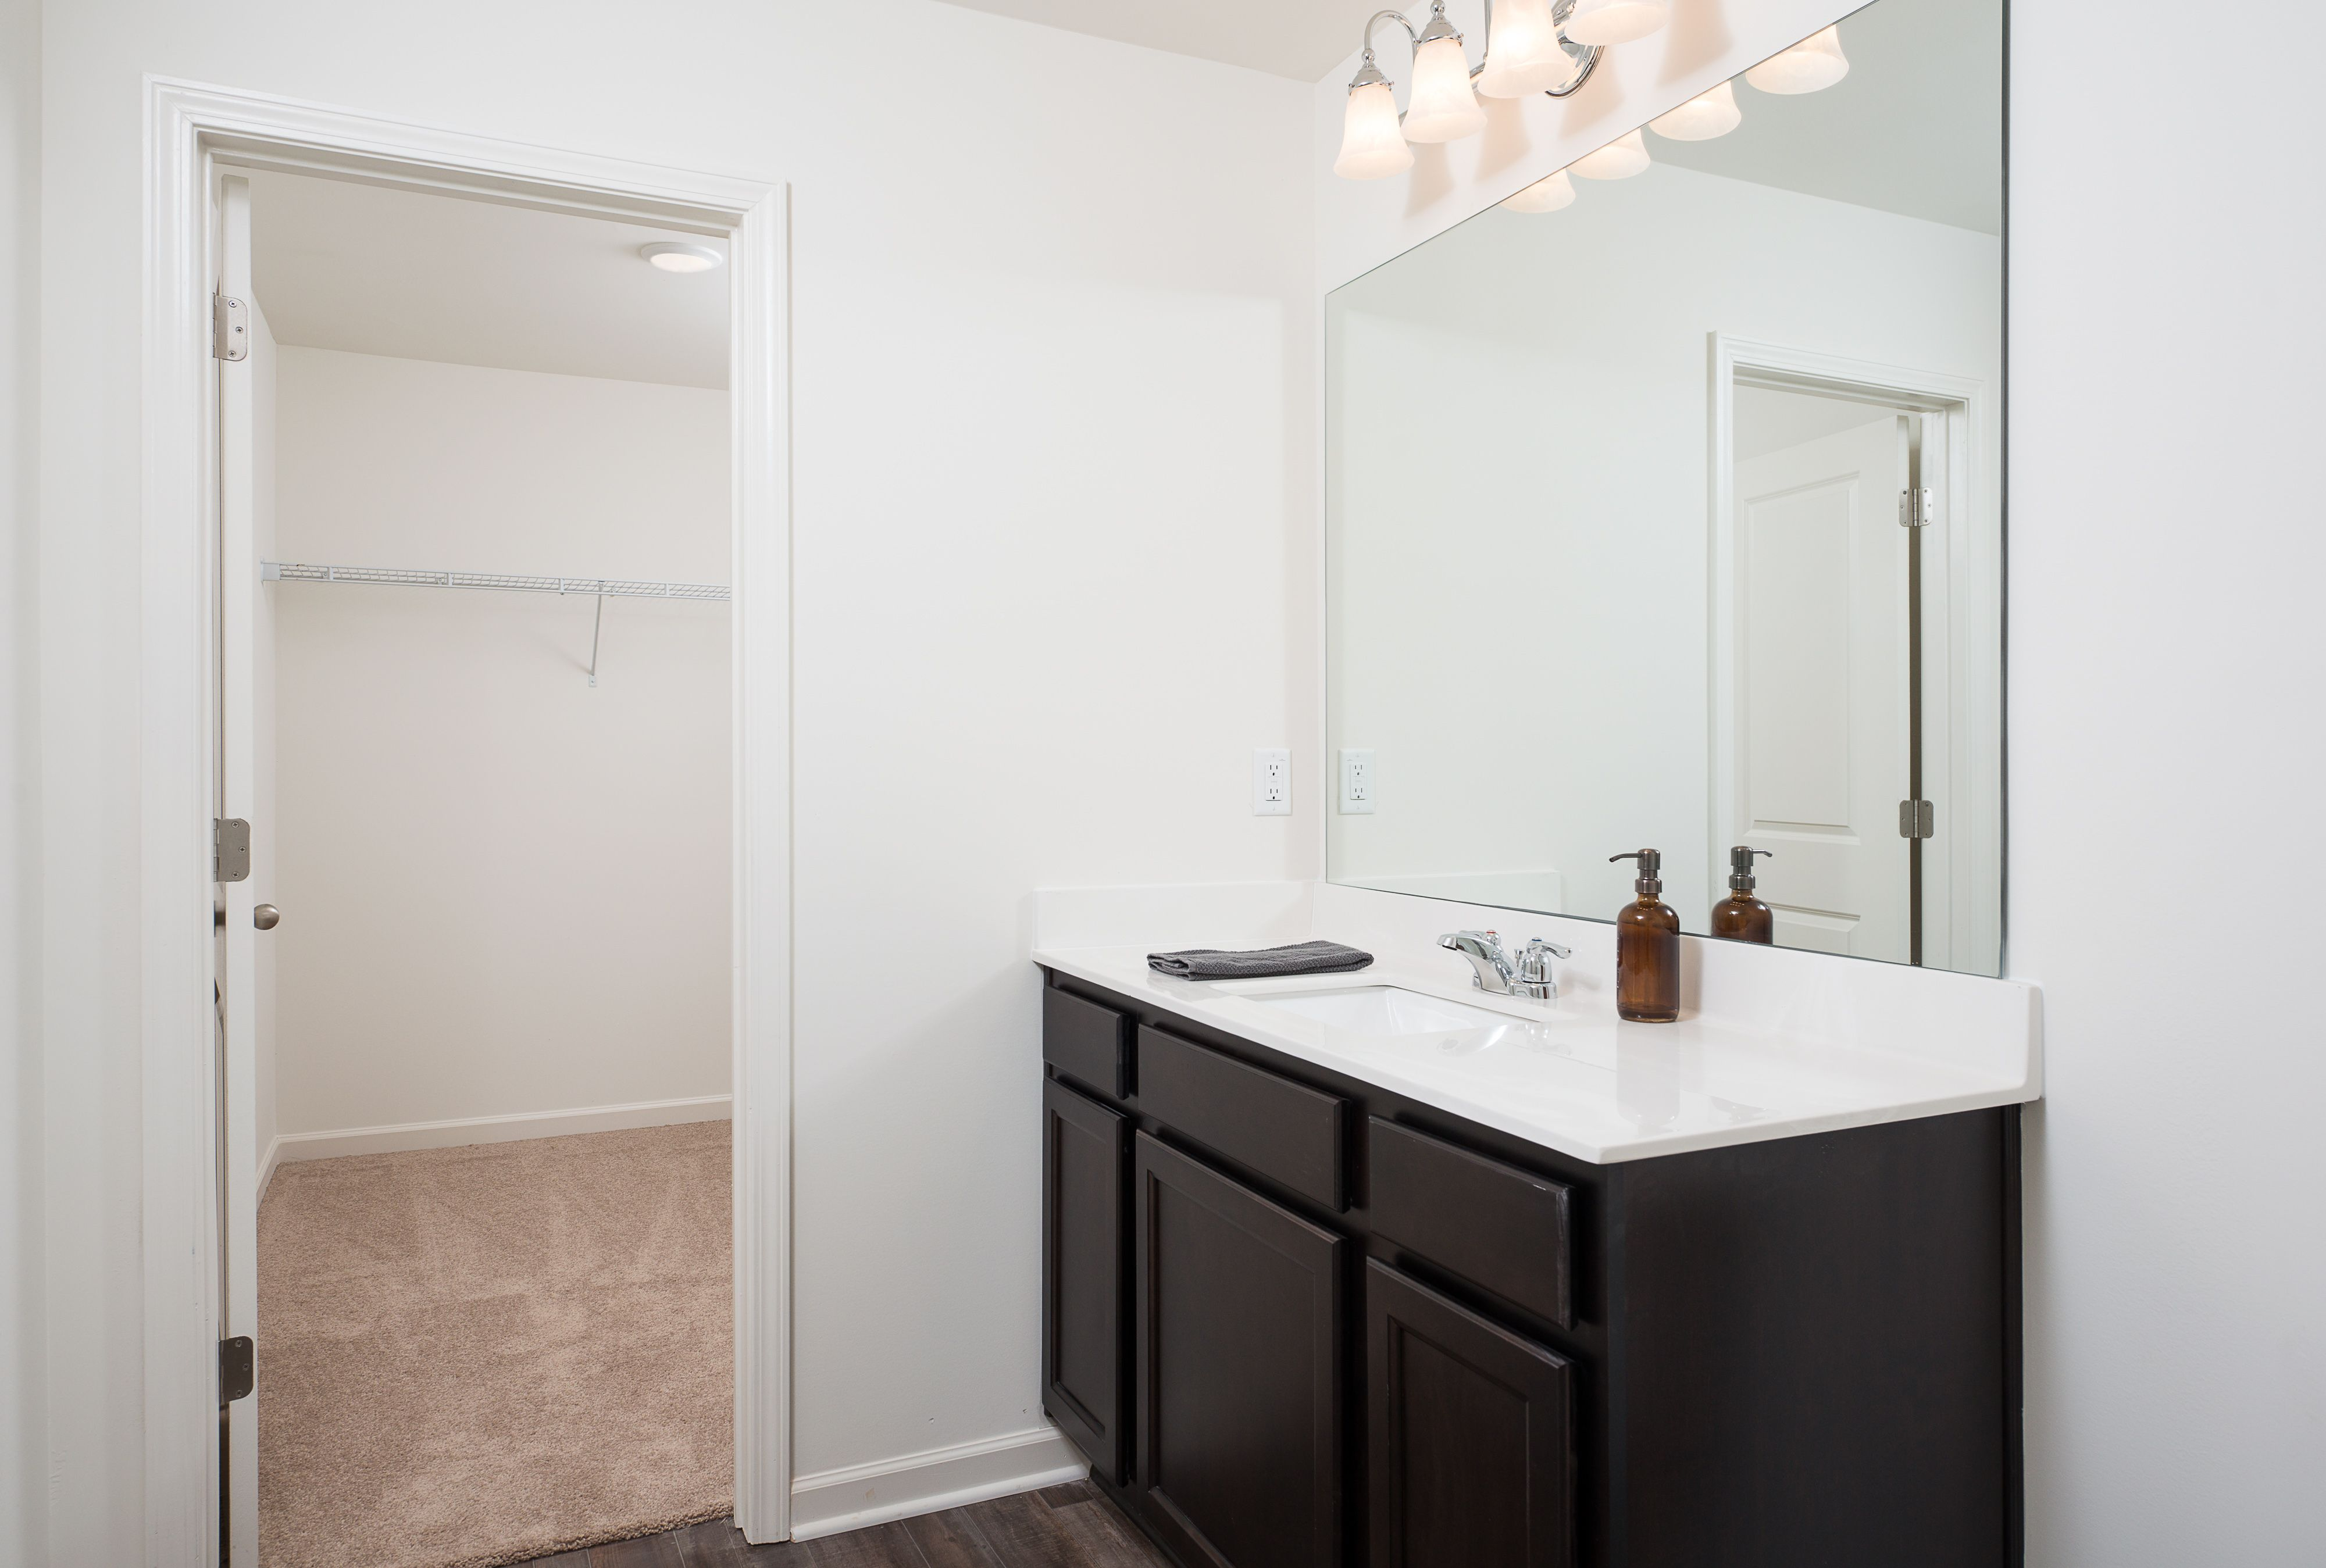 Bathroom featured in the Nebula By Starlight Homes in Atlanta, GA